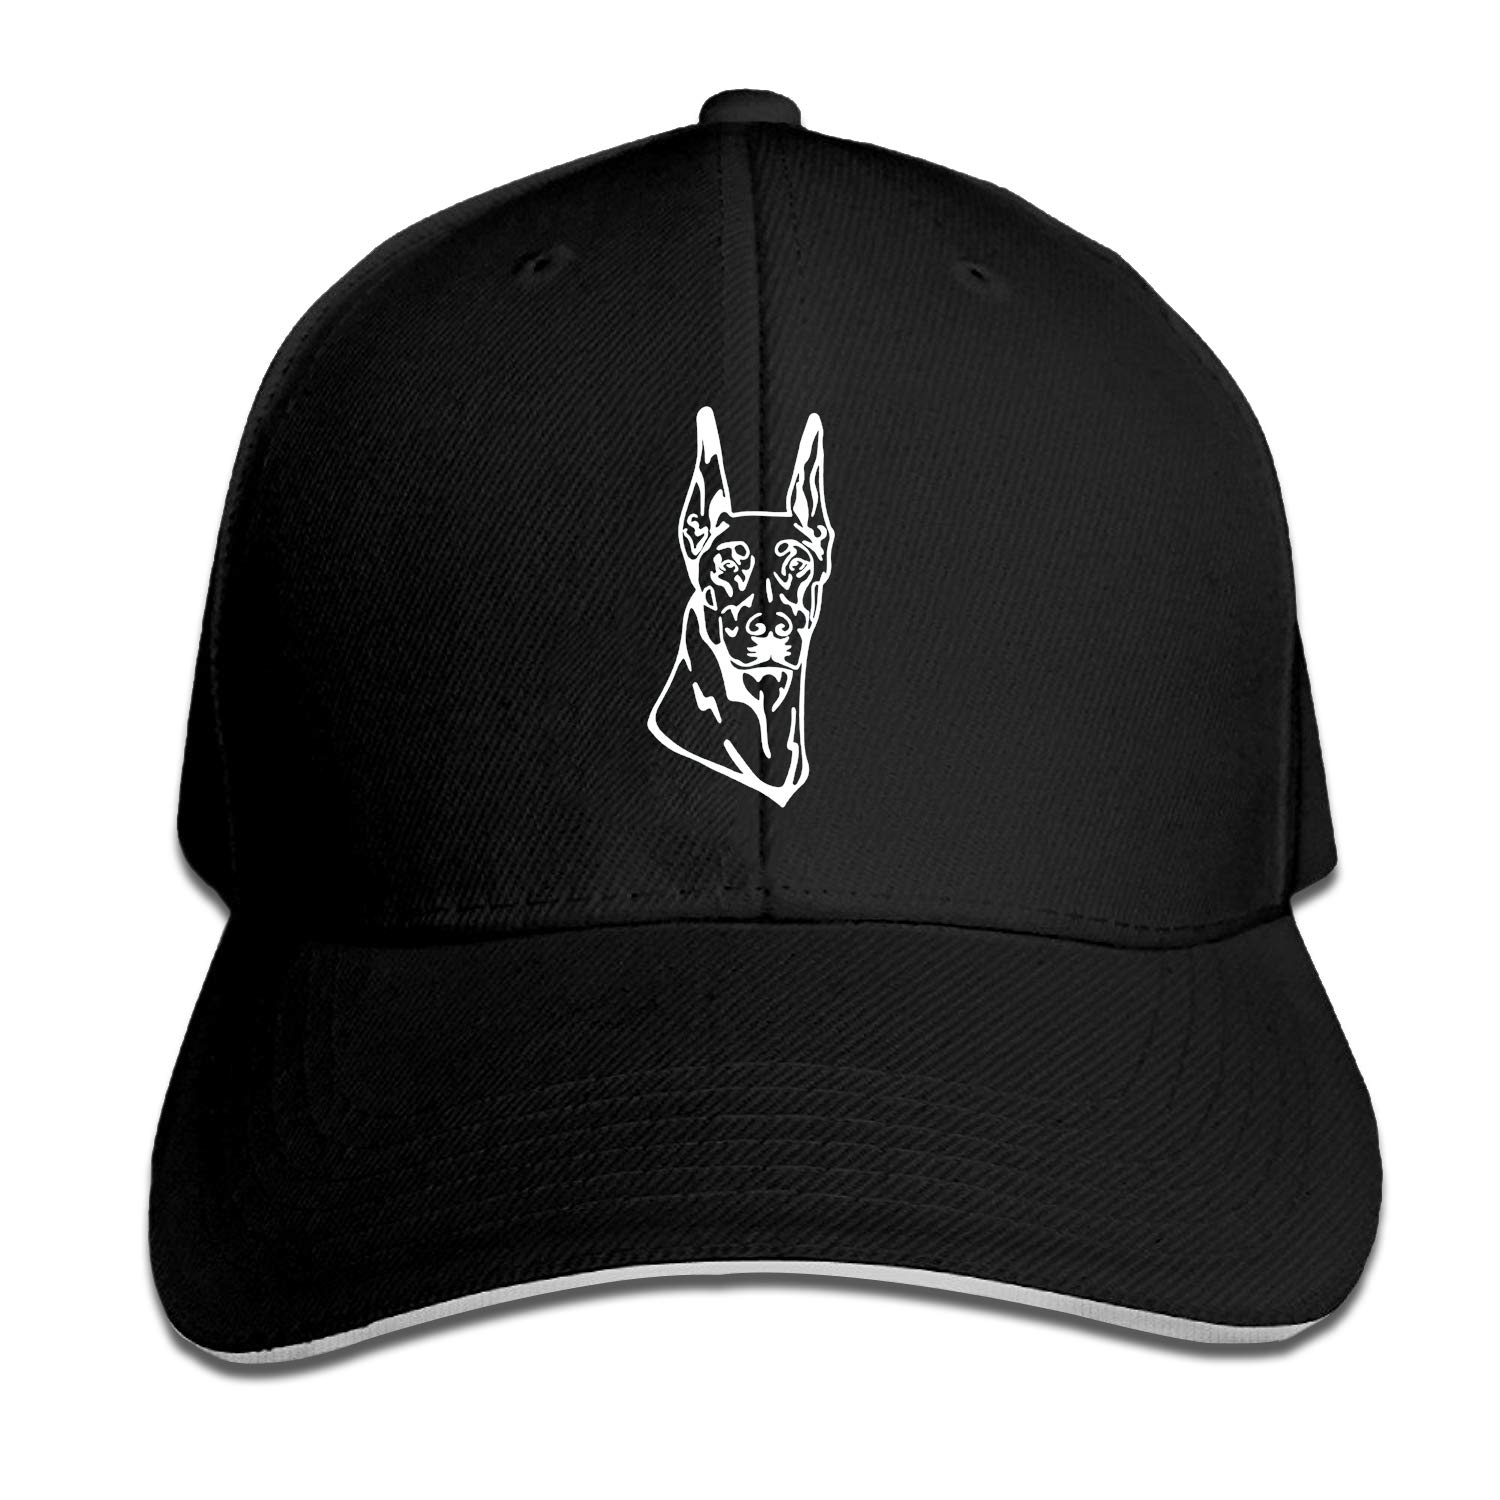 6d1914c3312 ETXHU Mens Caps-Doberman Pinscher Baseball Cap Women Personalised Hats for  Men Sandwich Peak Hat  Amazon.co.uk  Sports   Outdoors